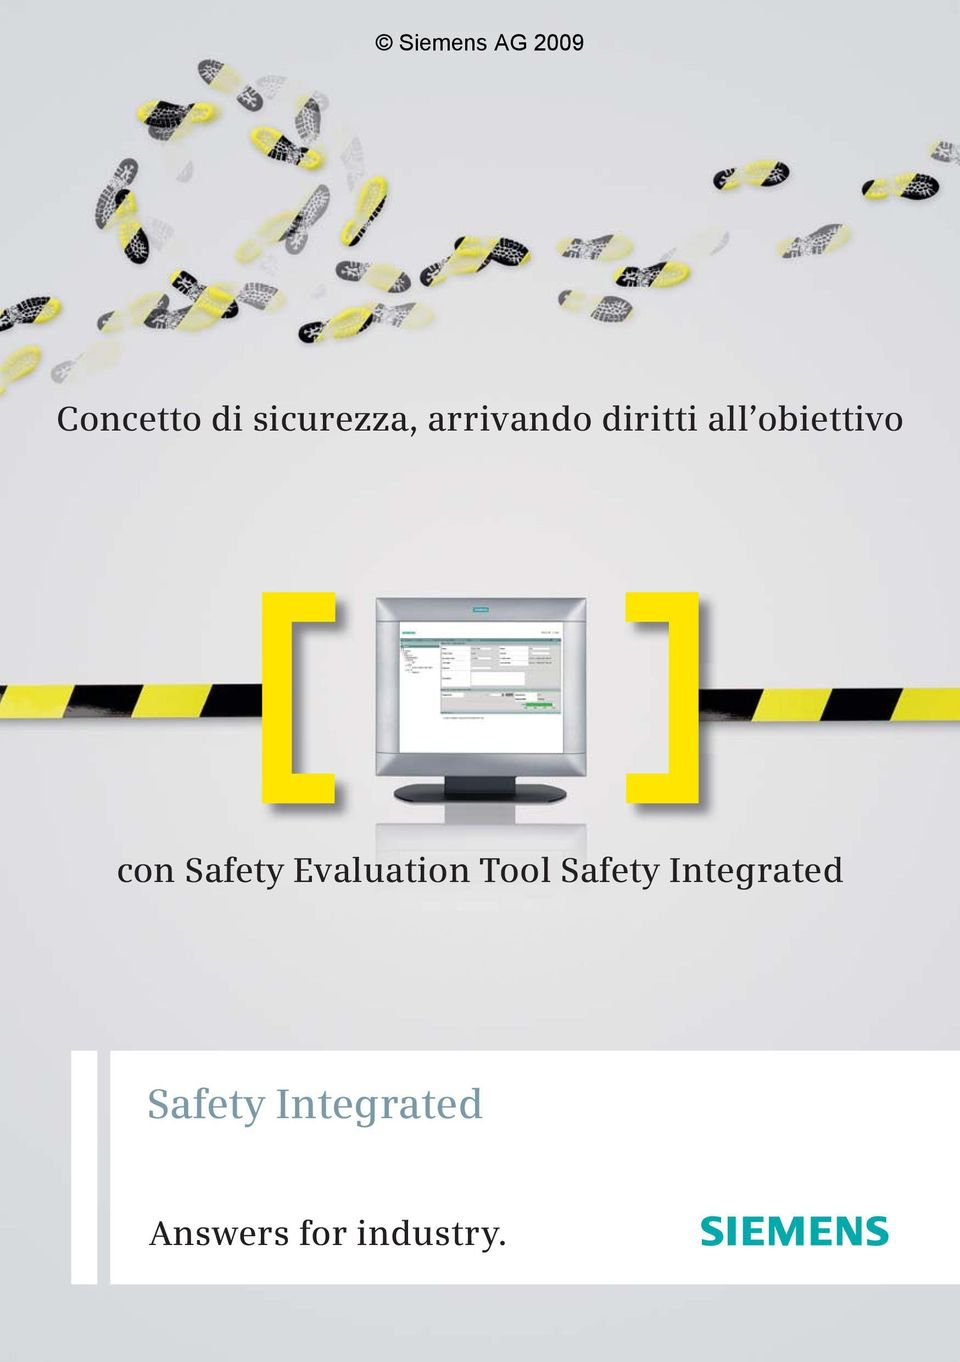 Evaluation Tool Safety Integrated